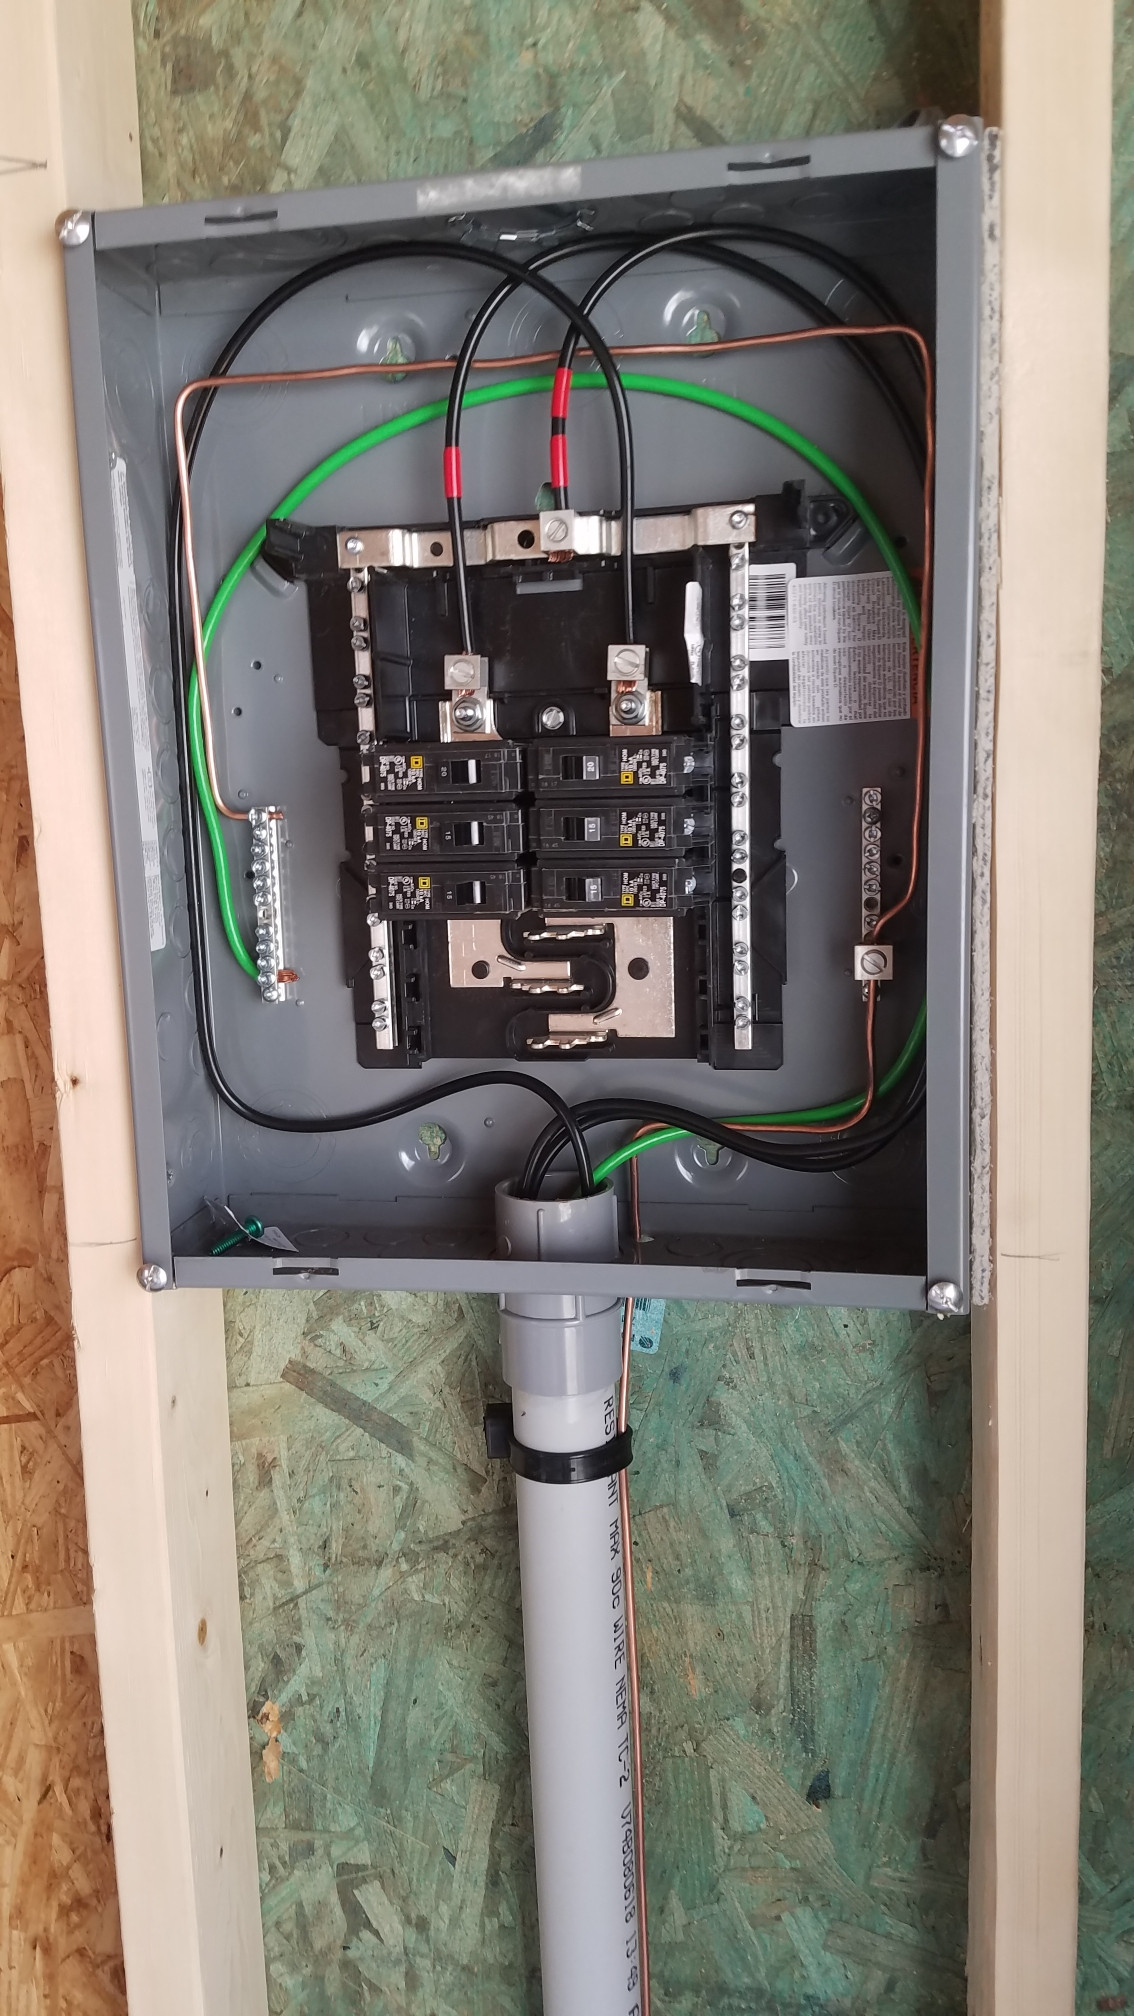 hight resolution of vic meter panel wiring data schematic diagram vic meter panel wiring